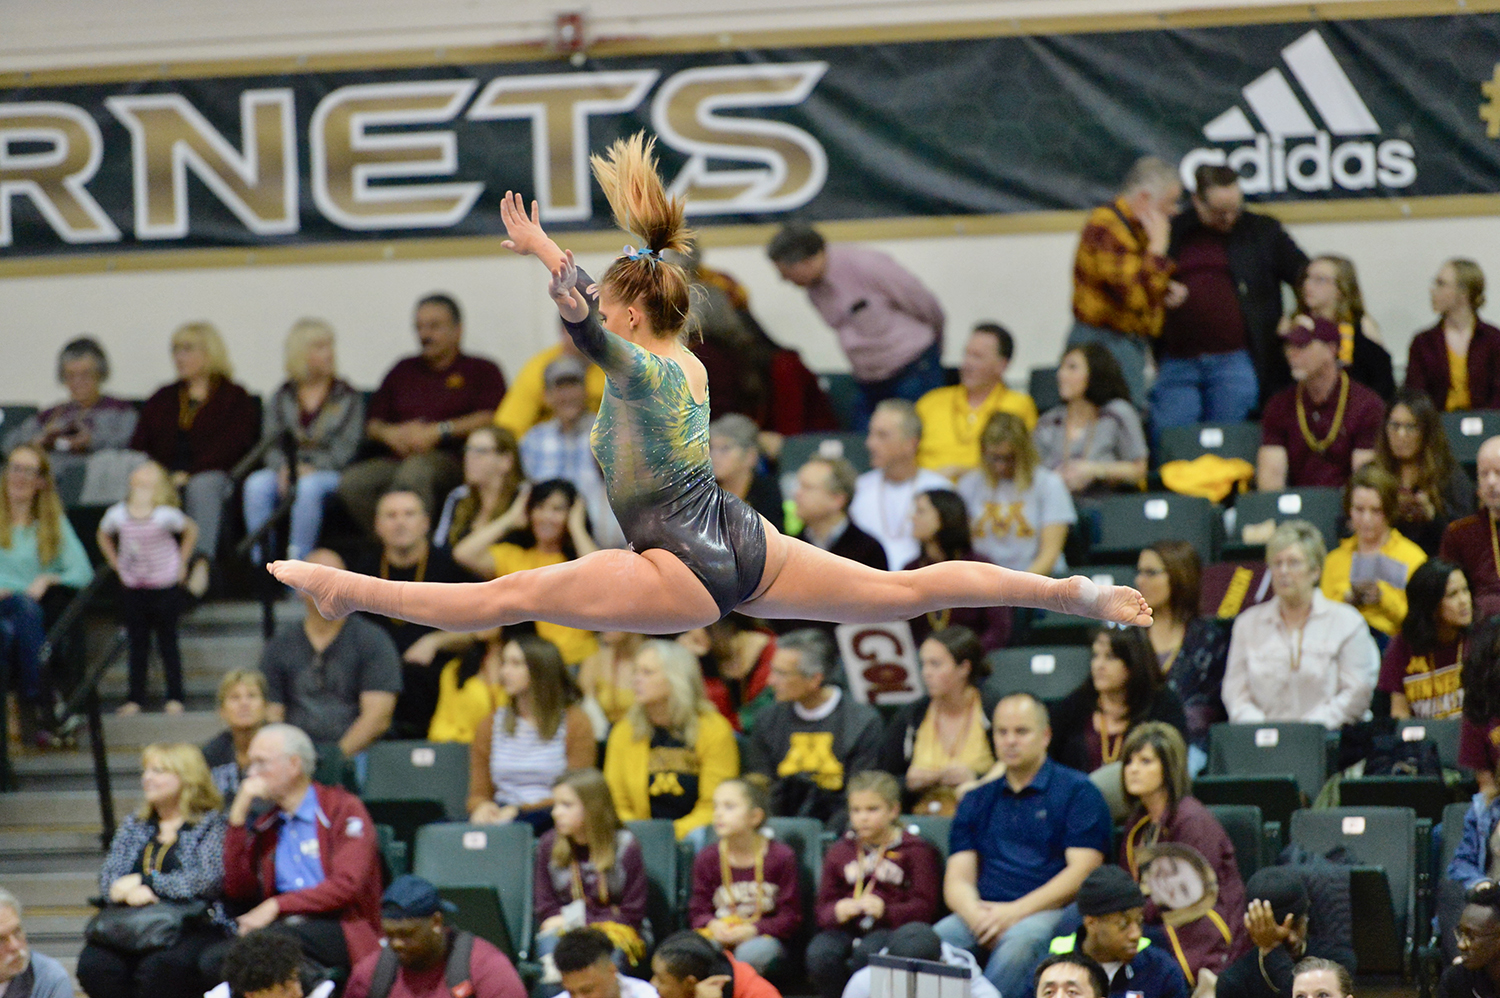 CAITLIN SOLIWODA SCORES SEASON HIGH IN ALL-AROUND AT NCAA REGIONAL